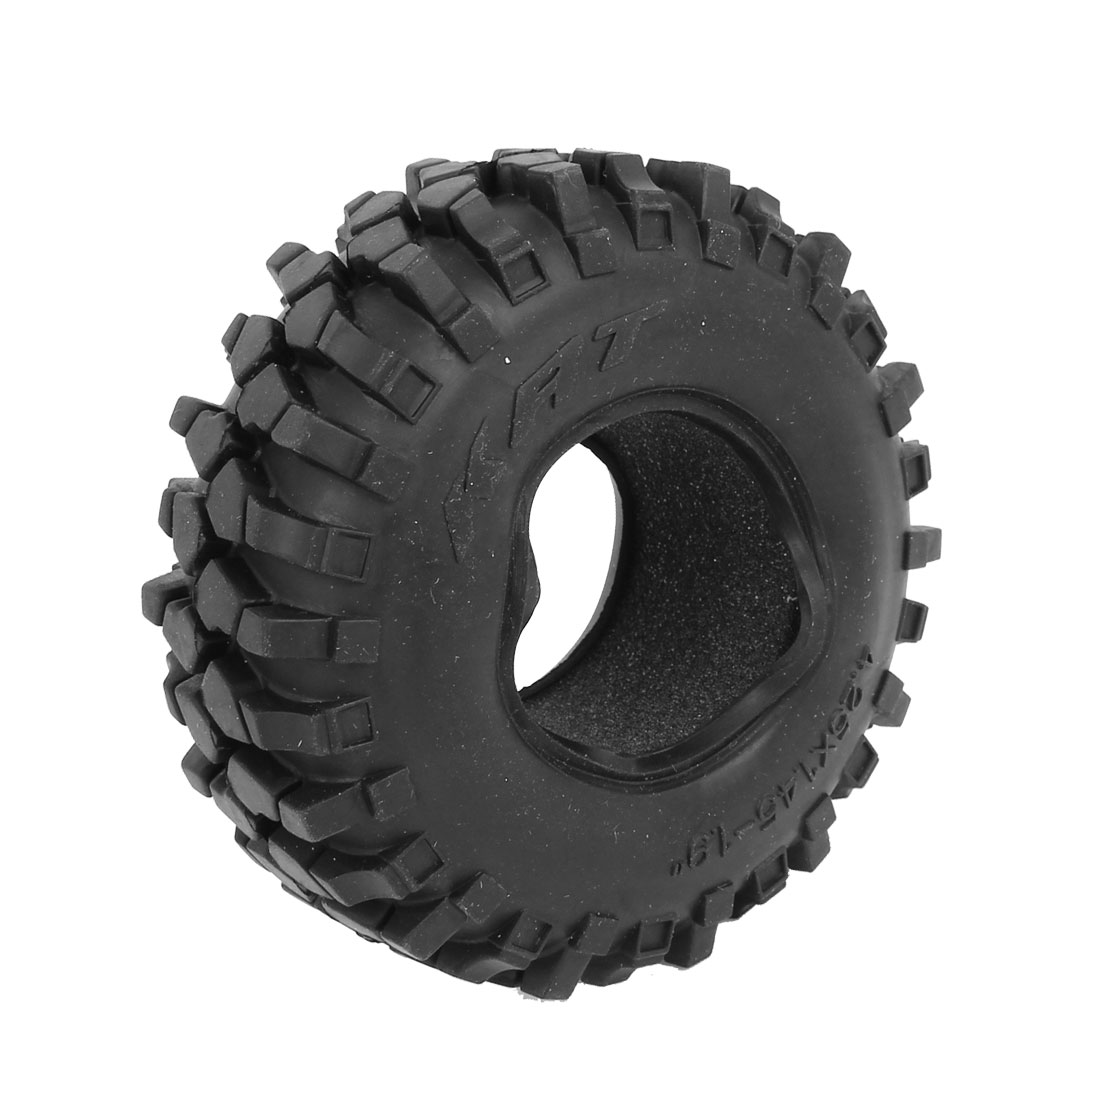 48mm Inner Dia RC Model Touring Car Crawler Tire Tyre for RC4WD F350 SCX10